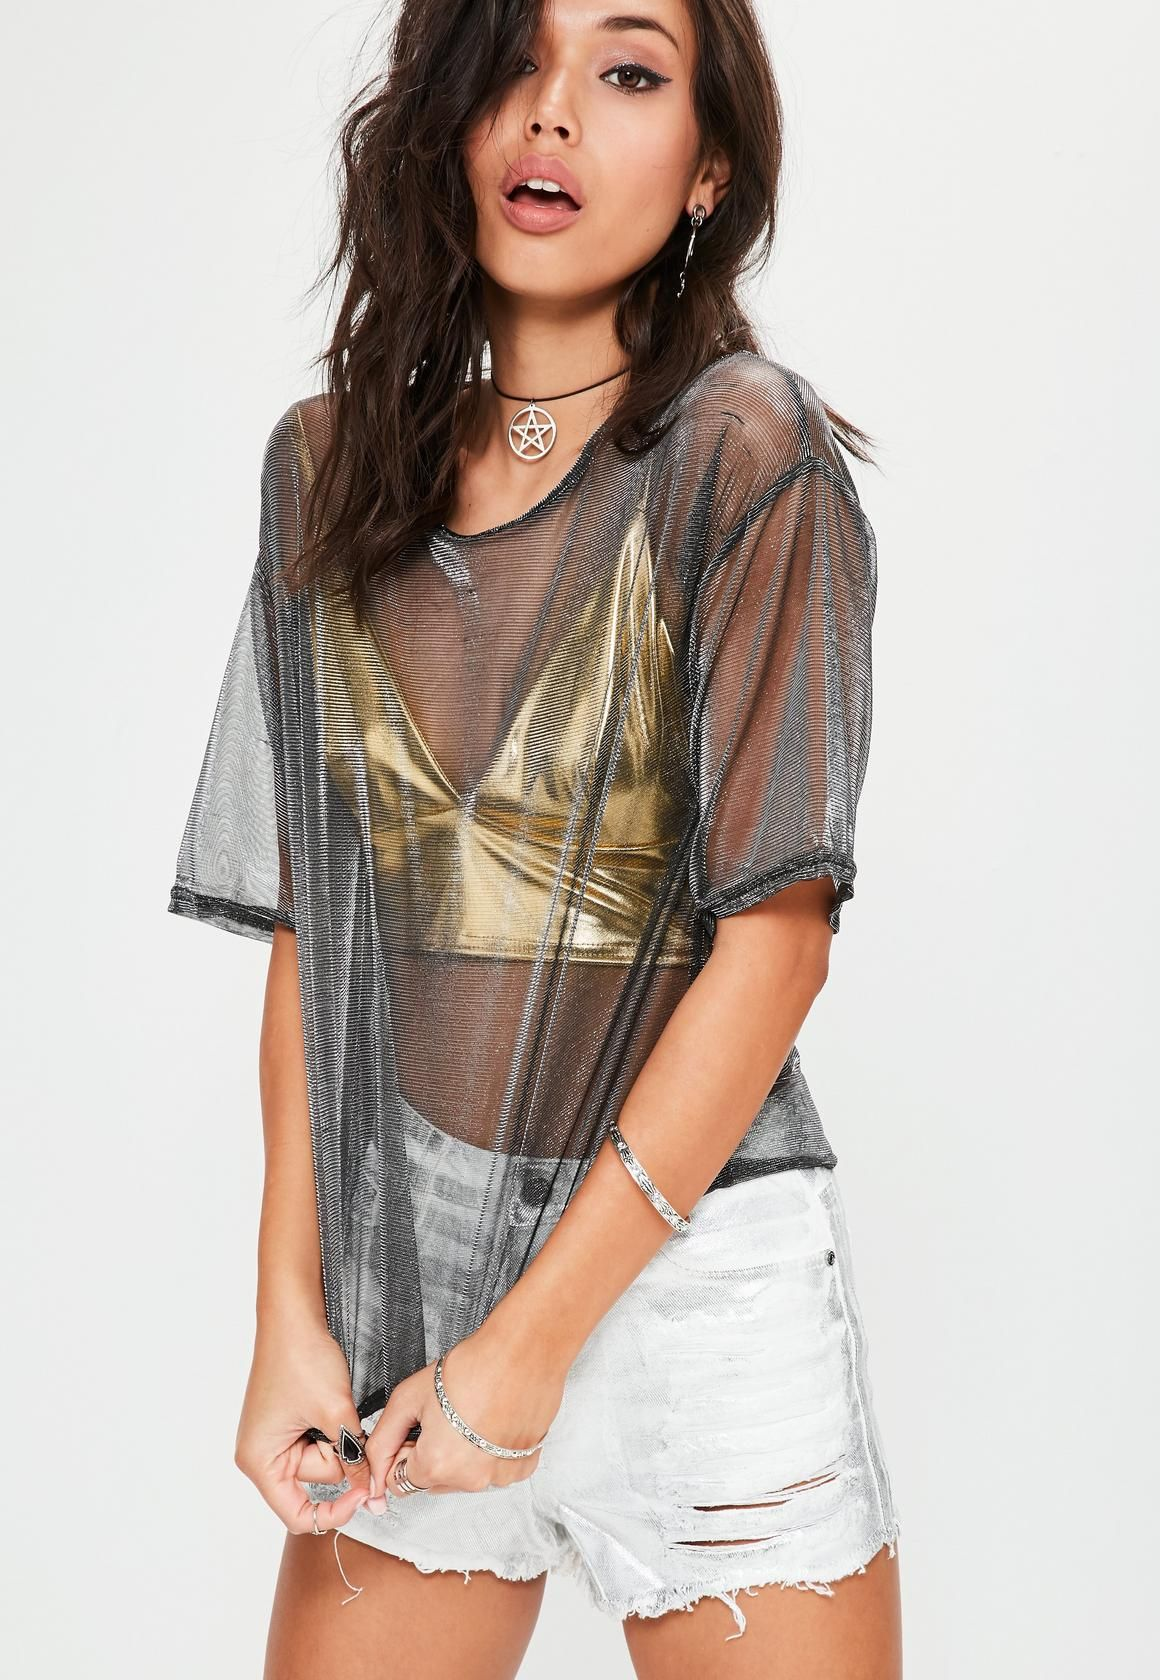 e4416a41c3a987 Missguided - Silver Metallic Double Layer Foil Mesh Top | shopping ...